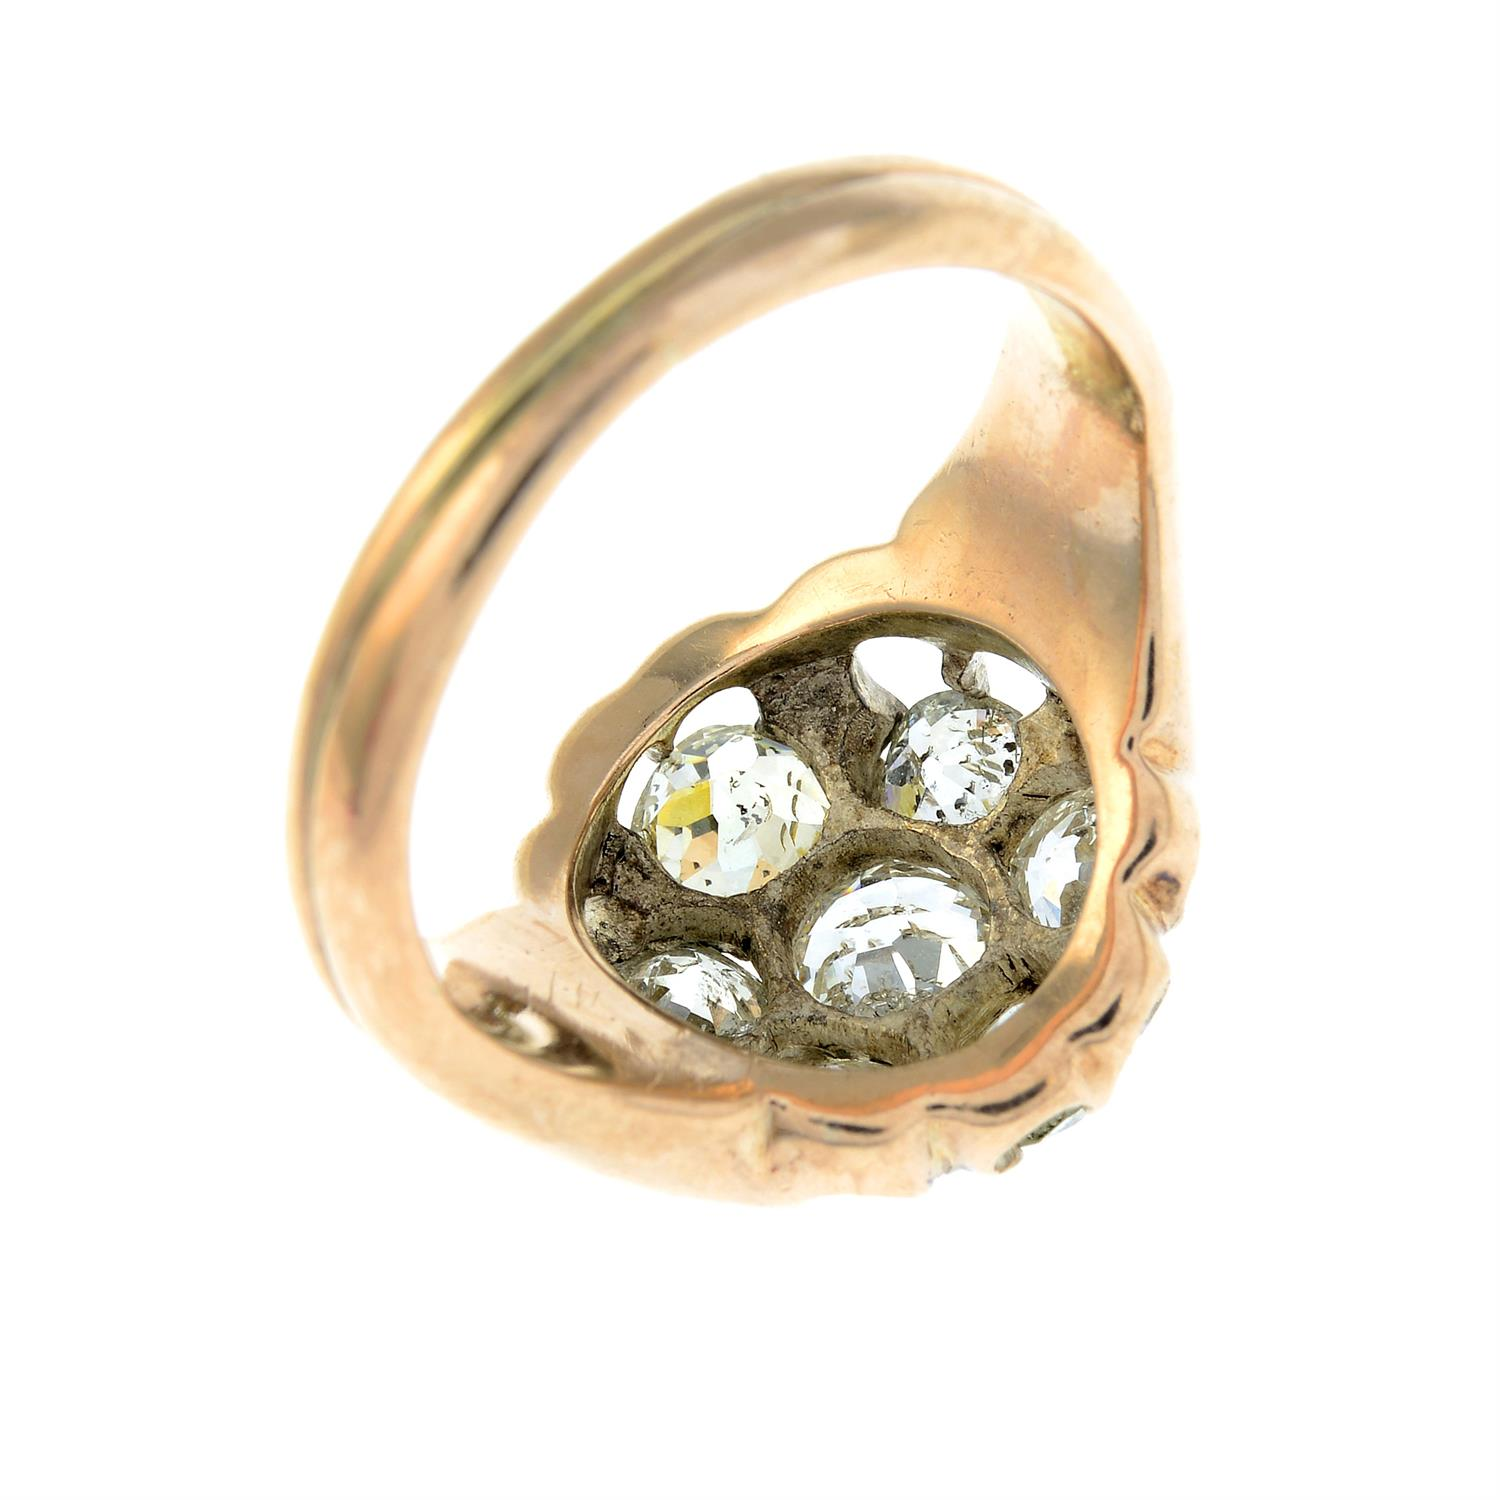 An early 20th century 9ct gold old-cut diamond cluster ring. - Image 5 of 6